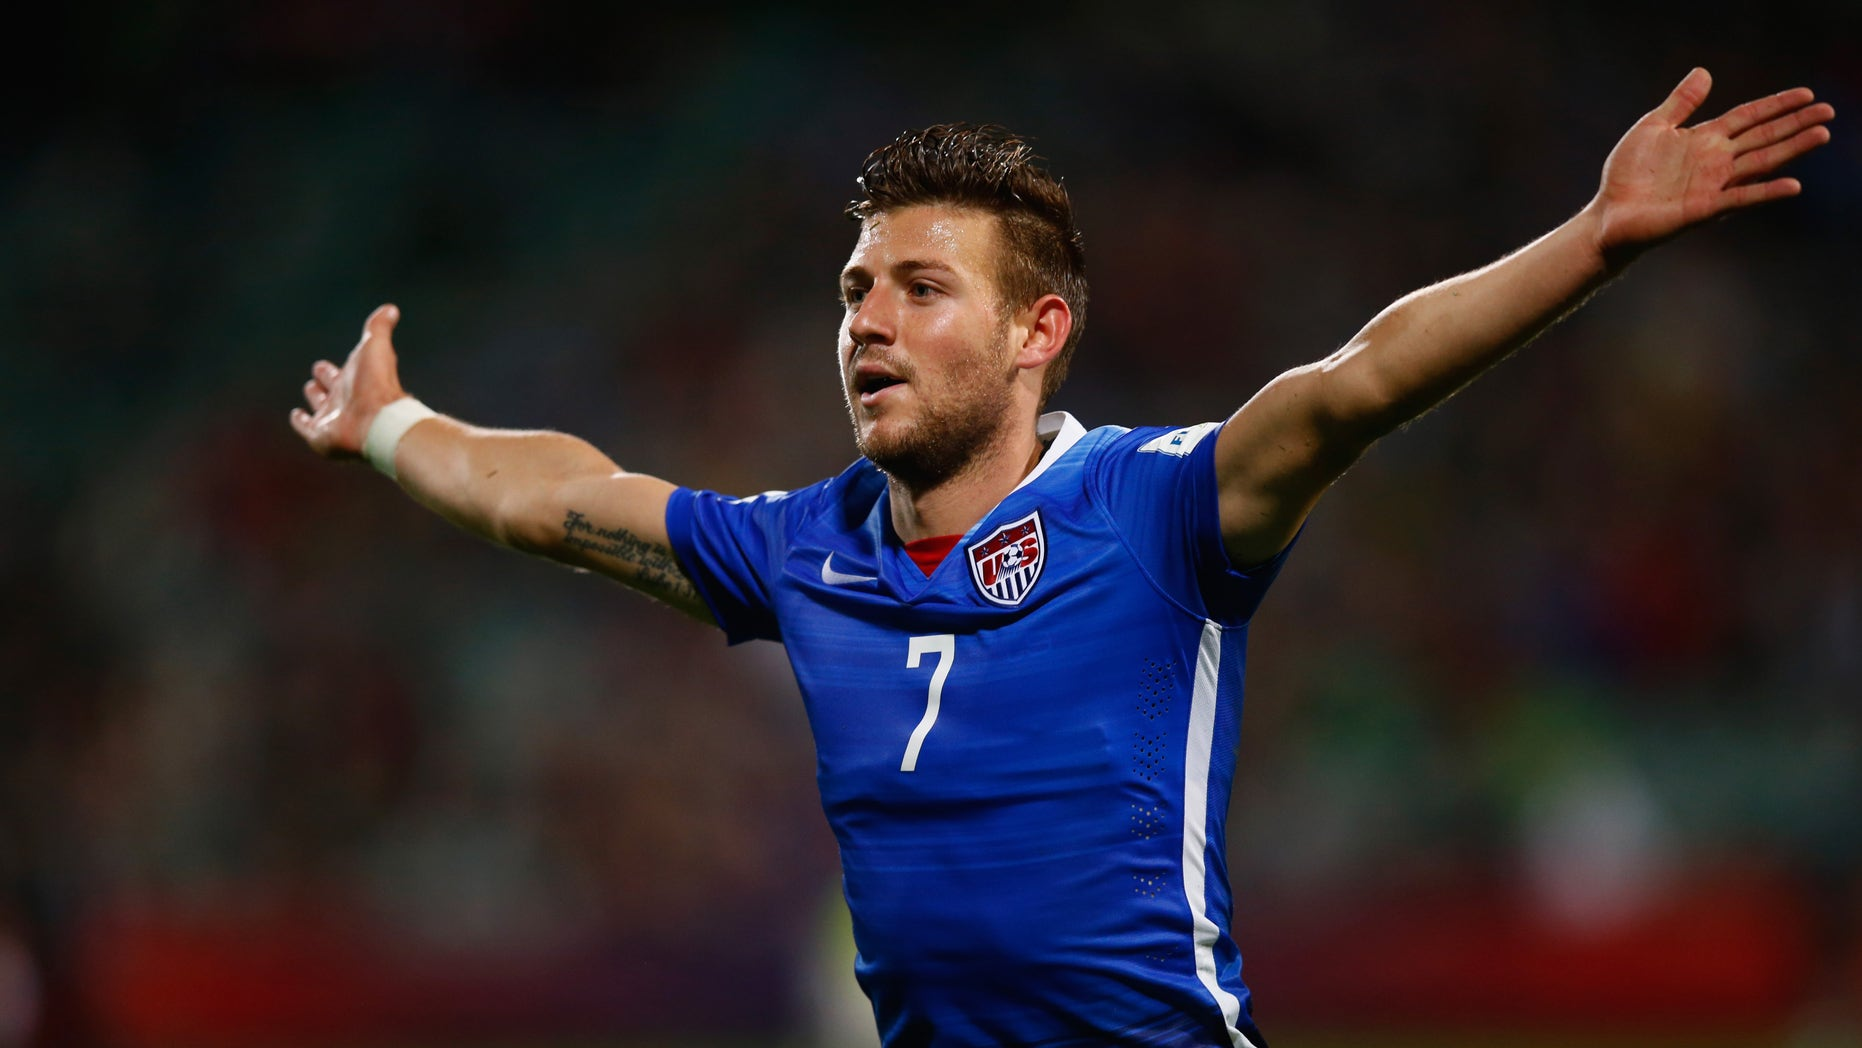 AUCKLAND, NEW ZEALAND - JUNE 02:  Paul Arriola of the USA celebrates his goal during the FIFA U-20 World Cup New Zealand 2015 Group A match between New Zealand and the United States at North Harbour Stadium on June 2, 2015 in Auckland, New Zealand.  (Photo by Phil Walter/Getty Images)